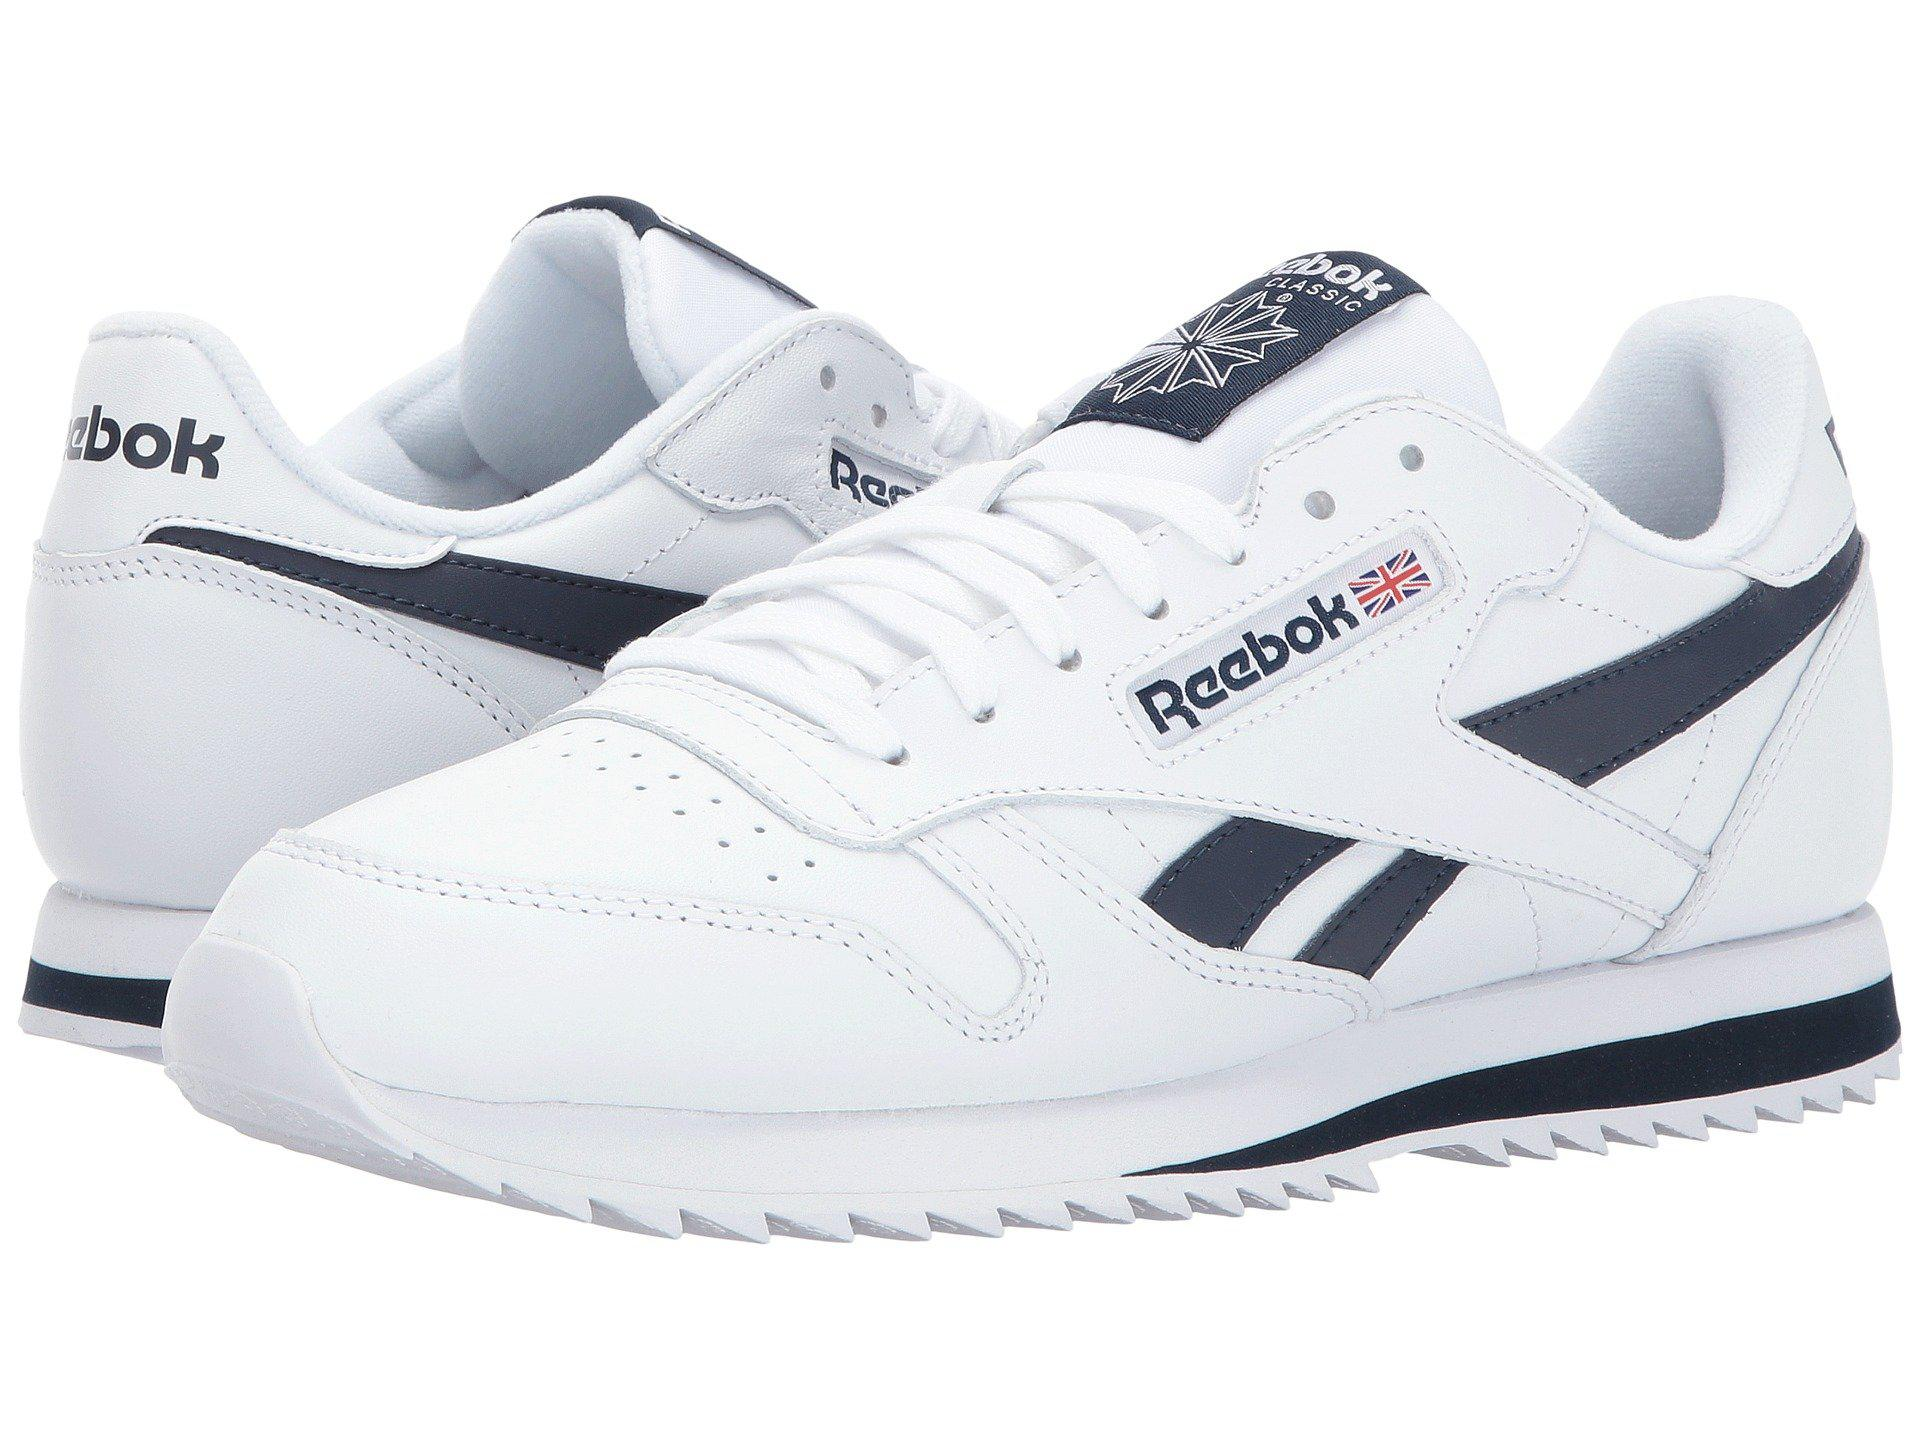 0053aab3a0f Reebok - White Classic Leather Ripple Low Bp for Men - Lyst. View fullscreen